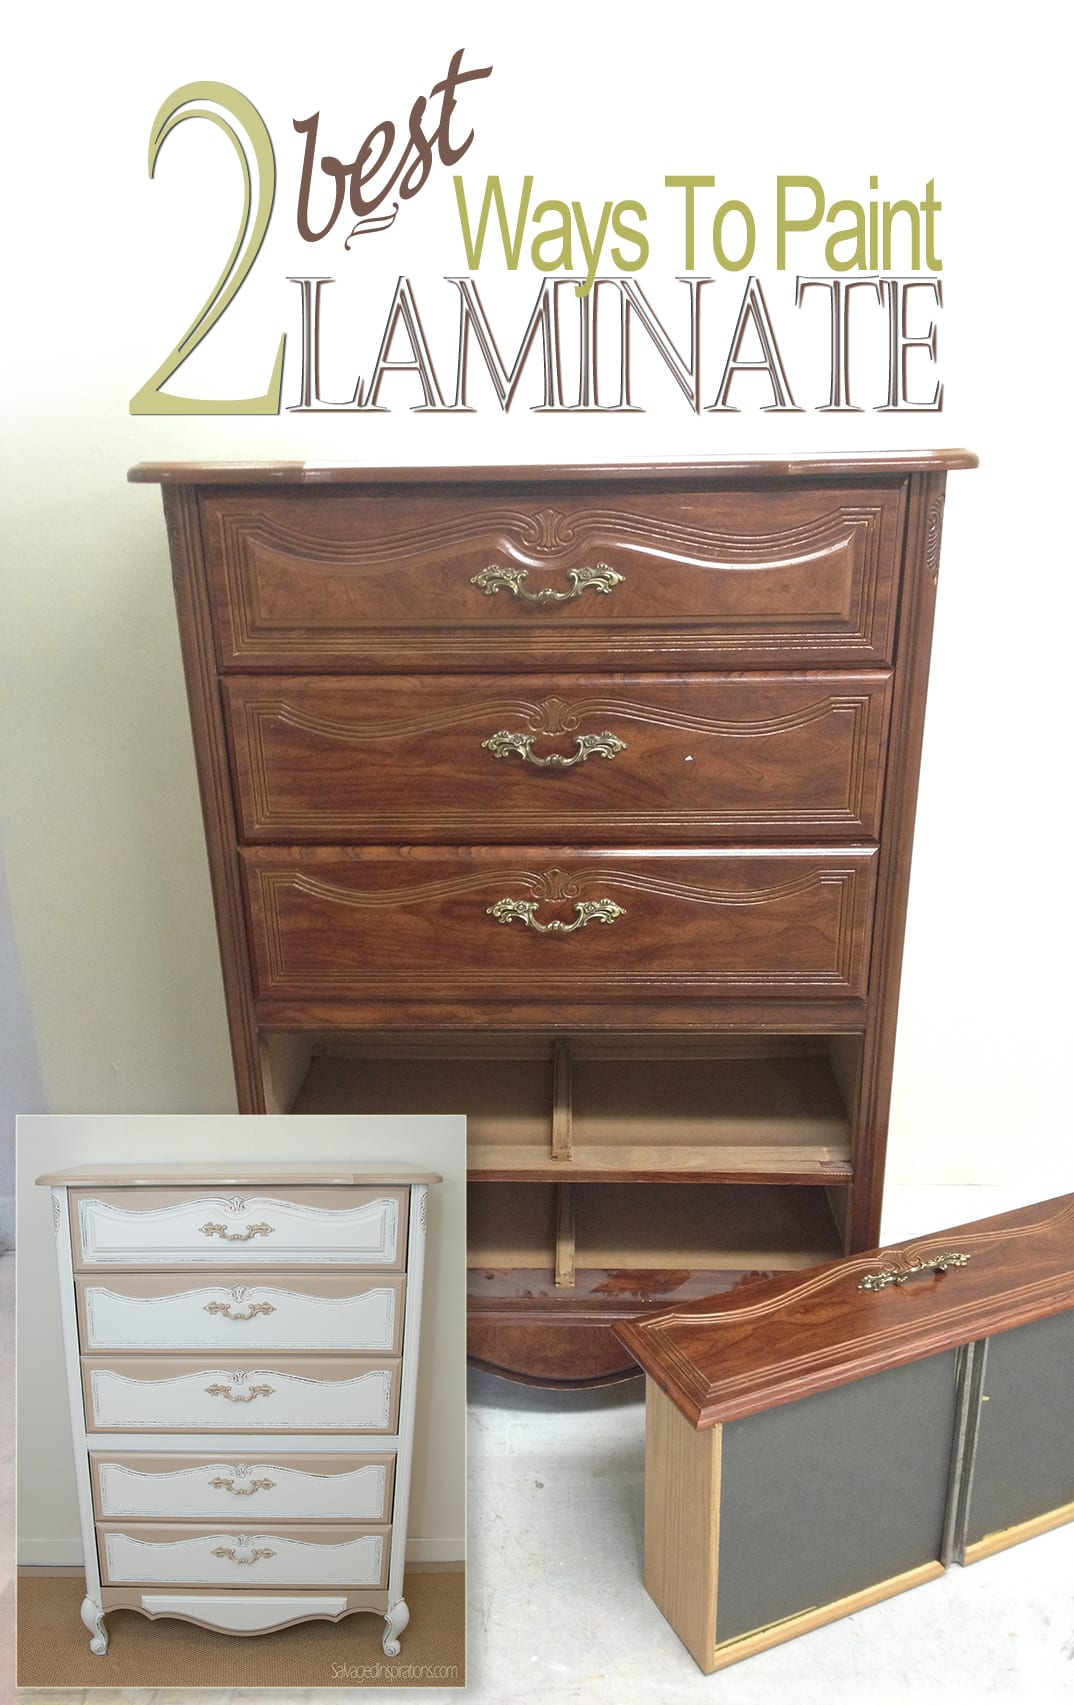 How To Paint Laminate   2 Ways. 2 Best Ways To Paint Laminate Furniture   Salvaged Inspirations